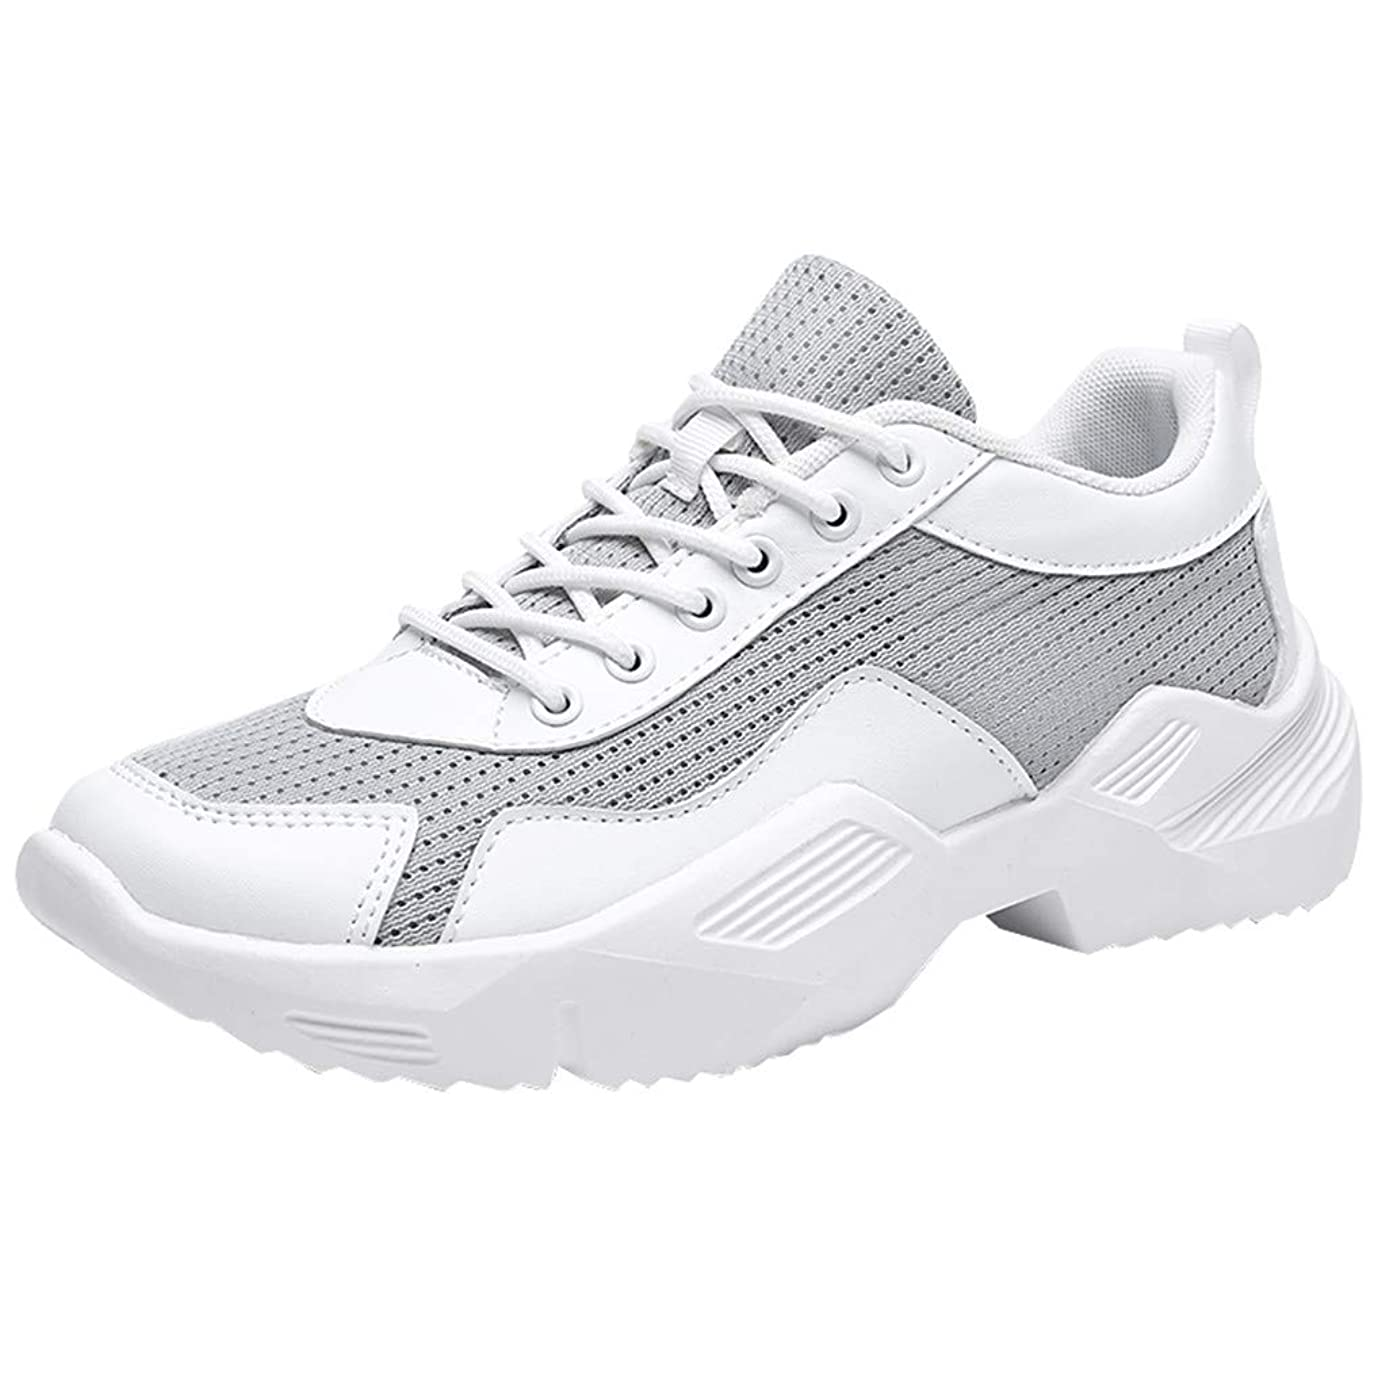 JJLIKER Men's Comfort Training Shoe Non-Slip Breathable Basketball Sneakers Fashion Lace-Up Walking Shoes for Boy Teen